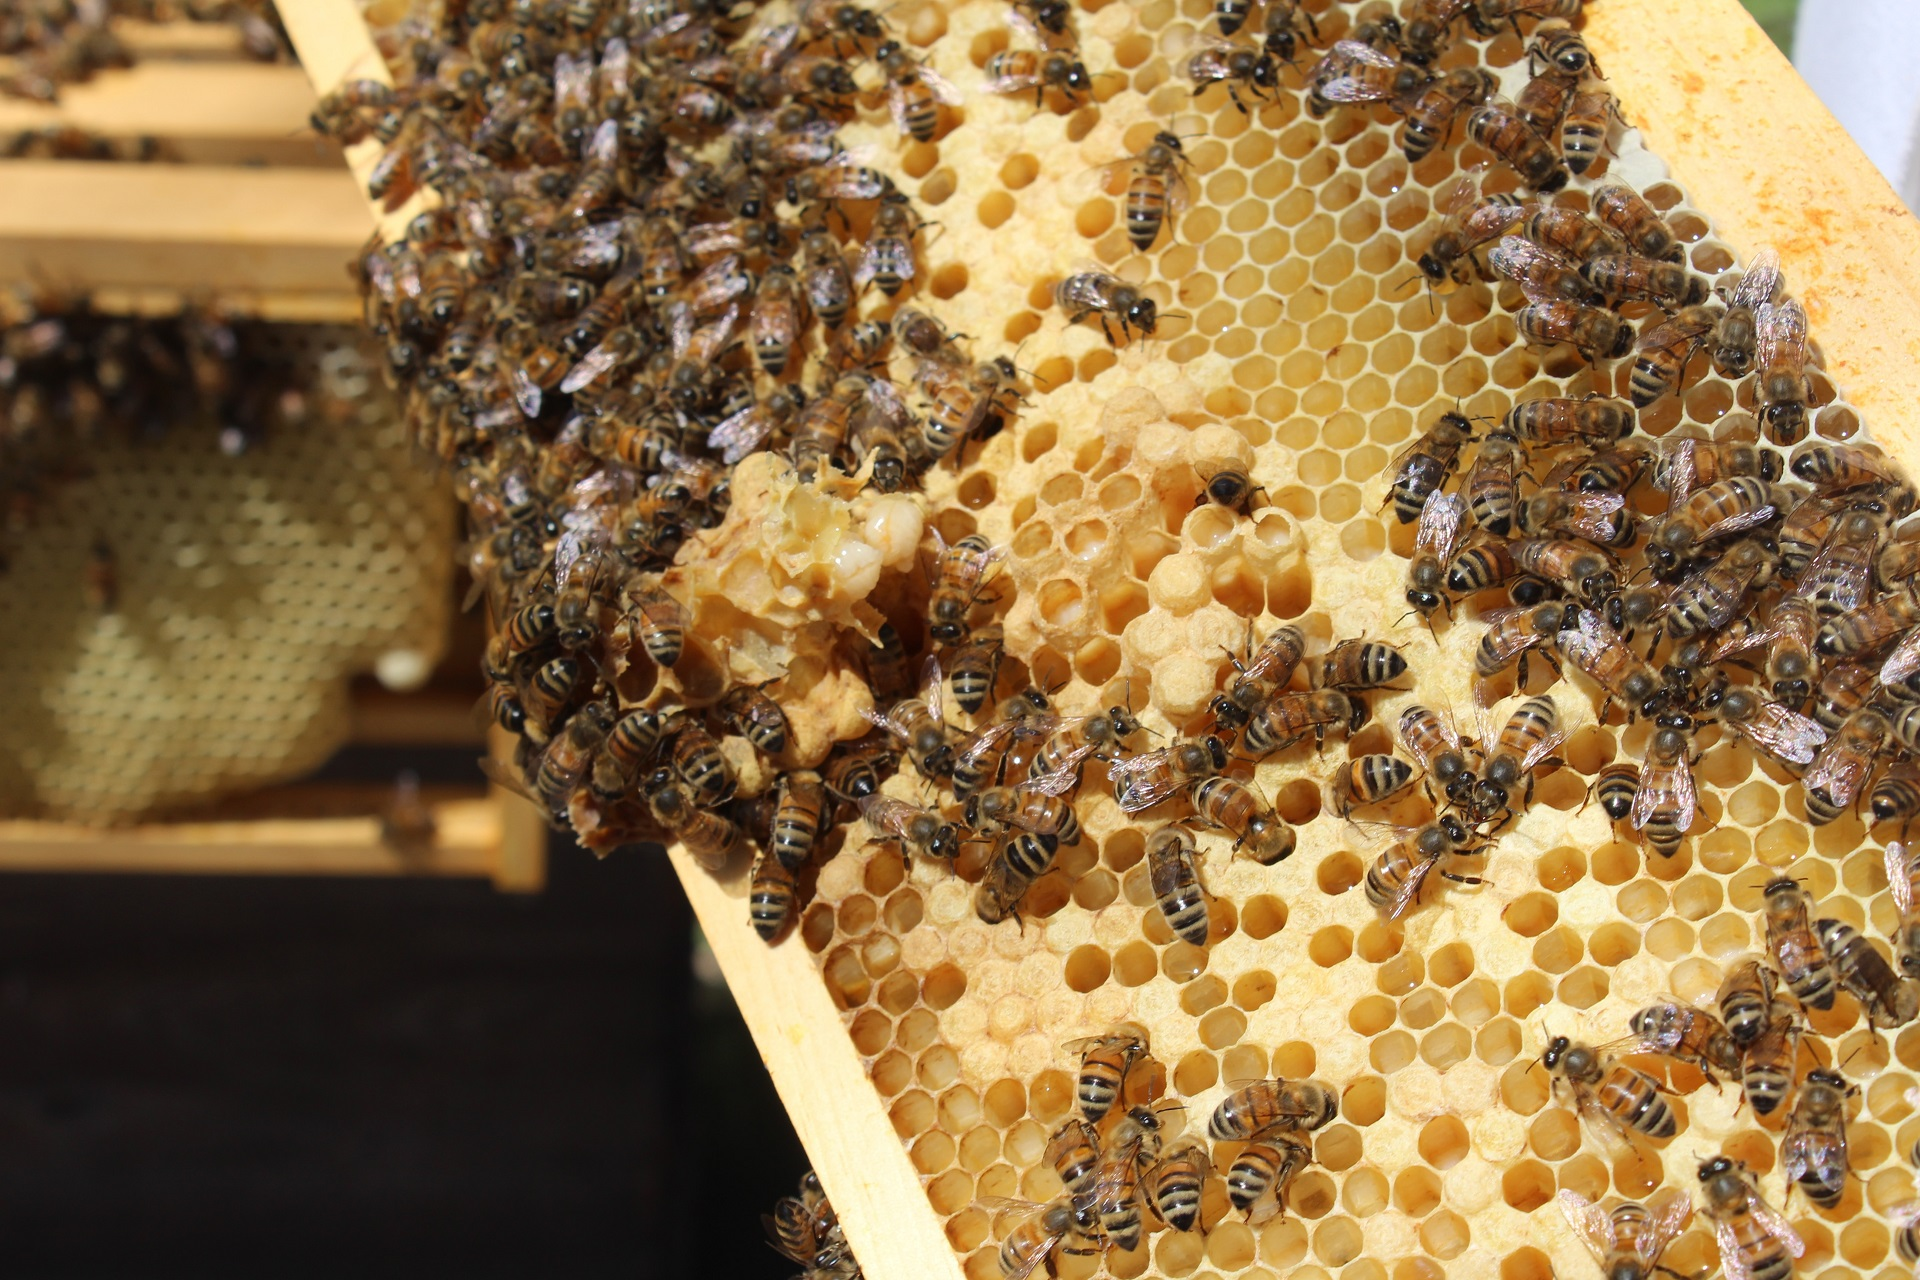 bee hive frames featured